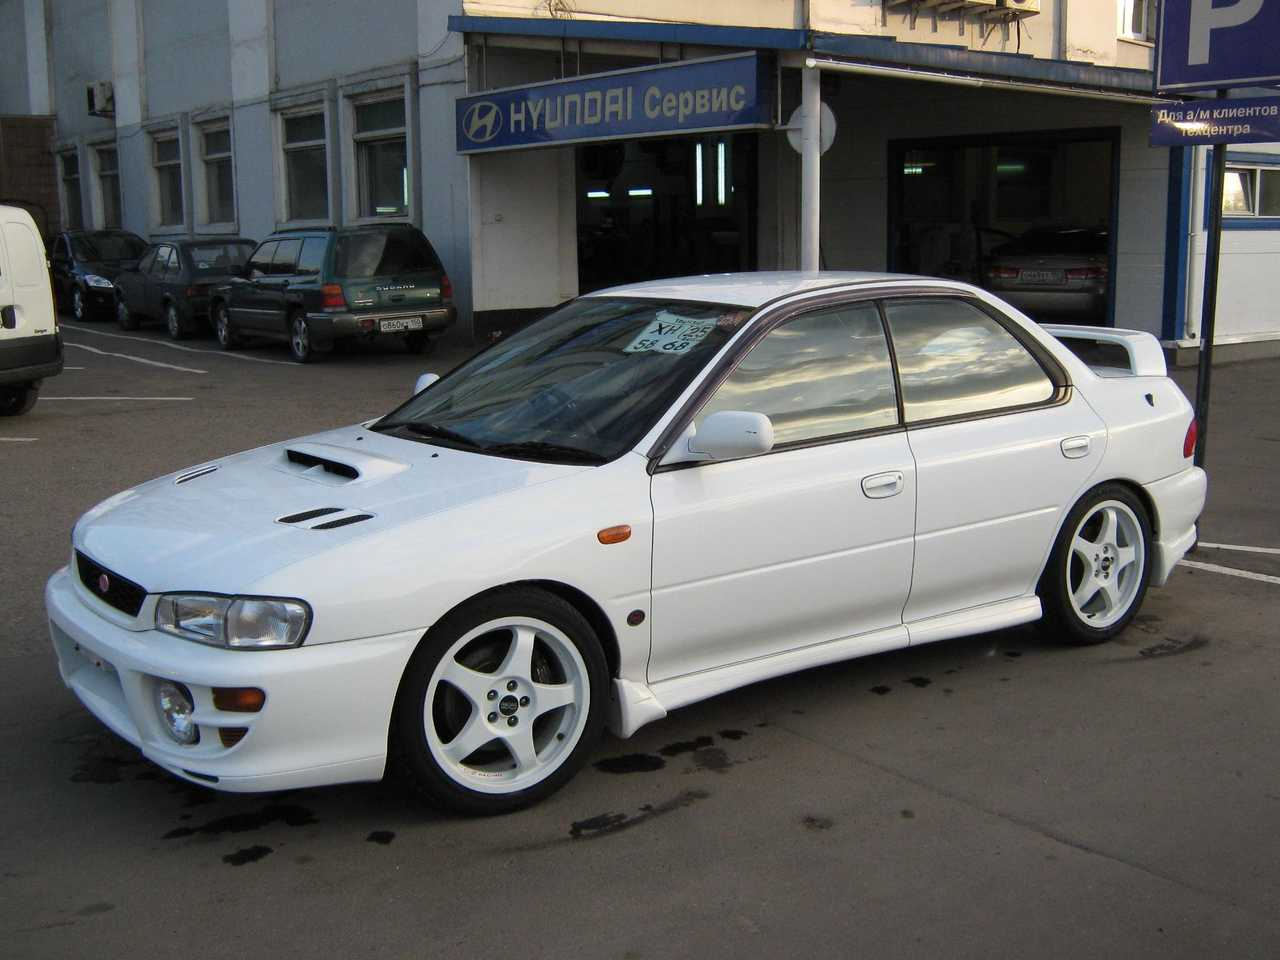 1999 subaru impreza wrx sti images 2000cc gasoline. Black Bedroom Furniture Sets. Home Design Ideas